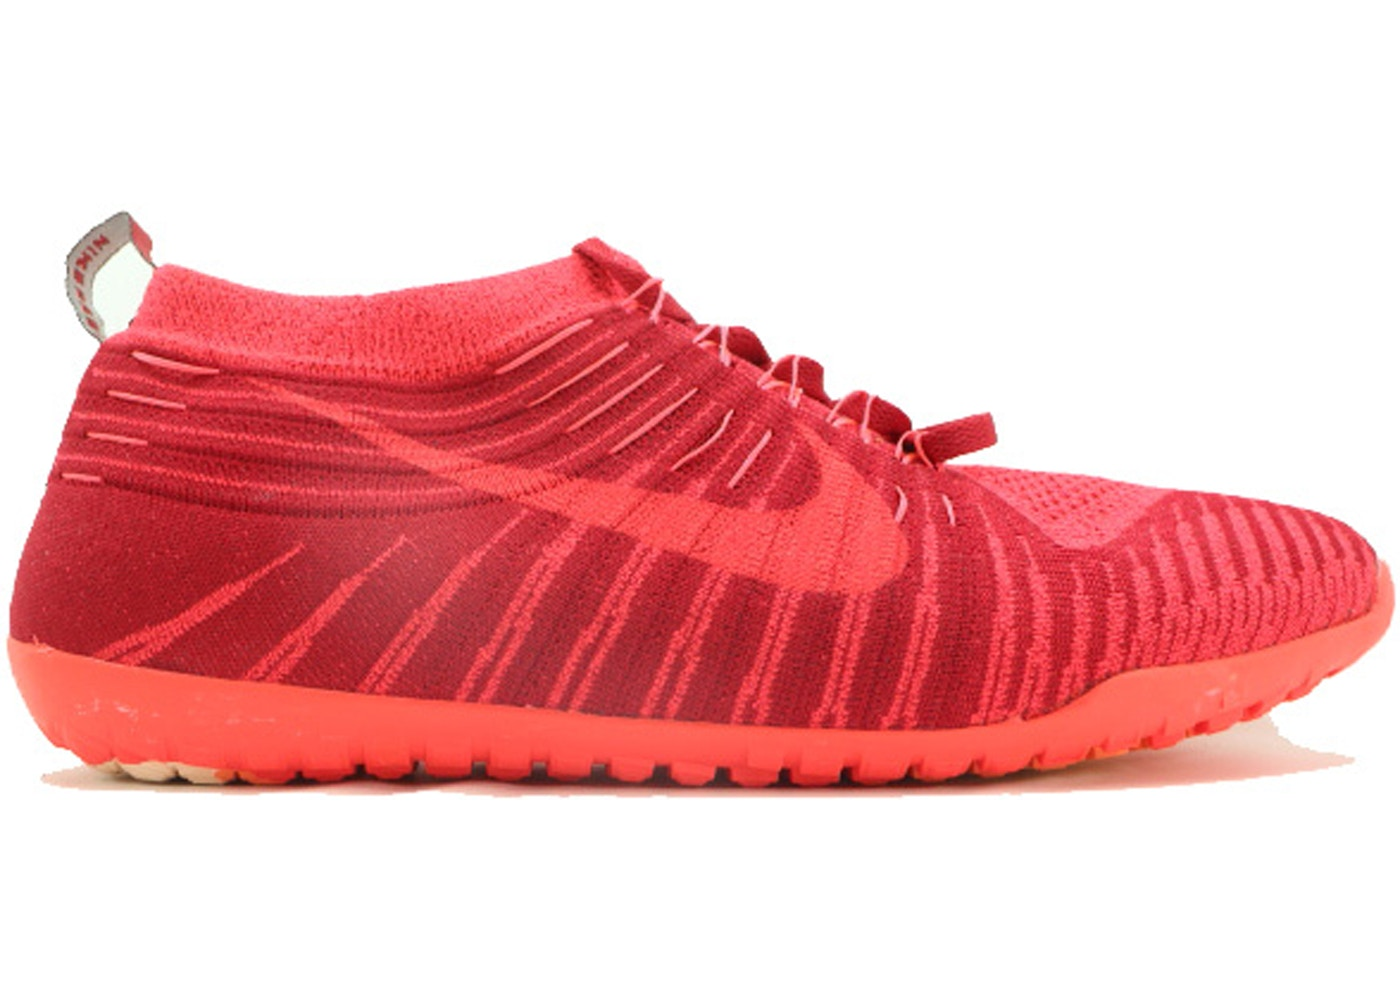 super popular bc58a e6b20 Nike Free Hyperfeel Run Gym Red - 596249-668